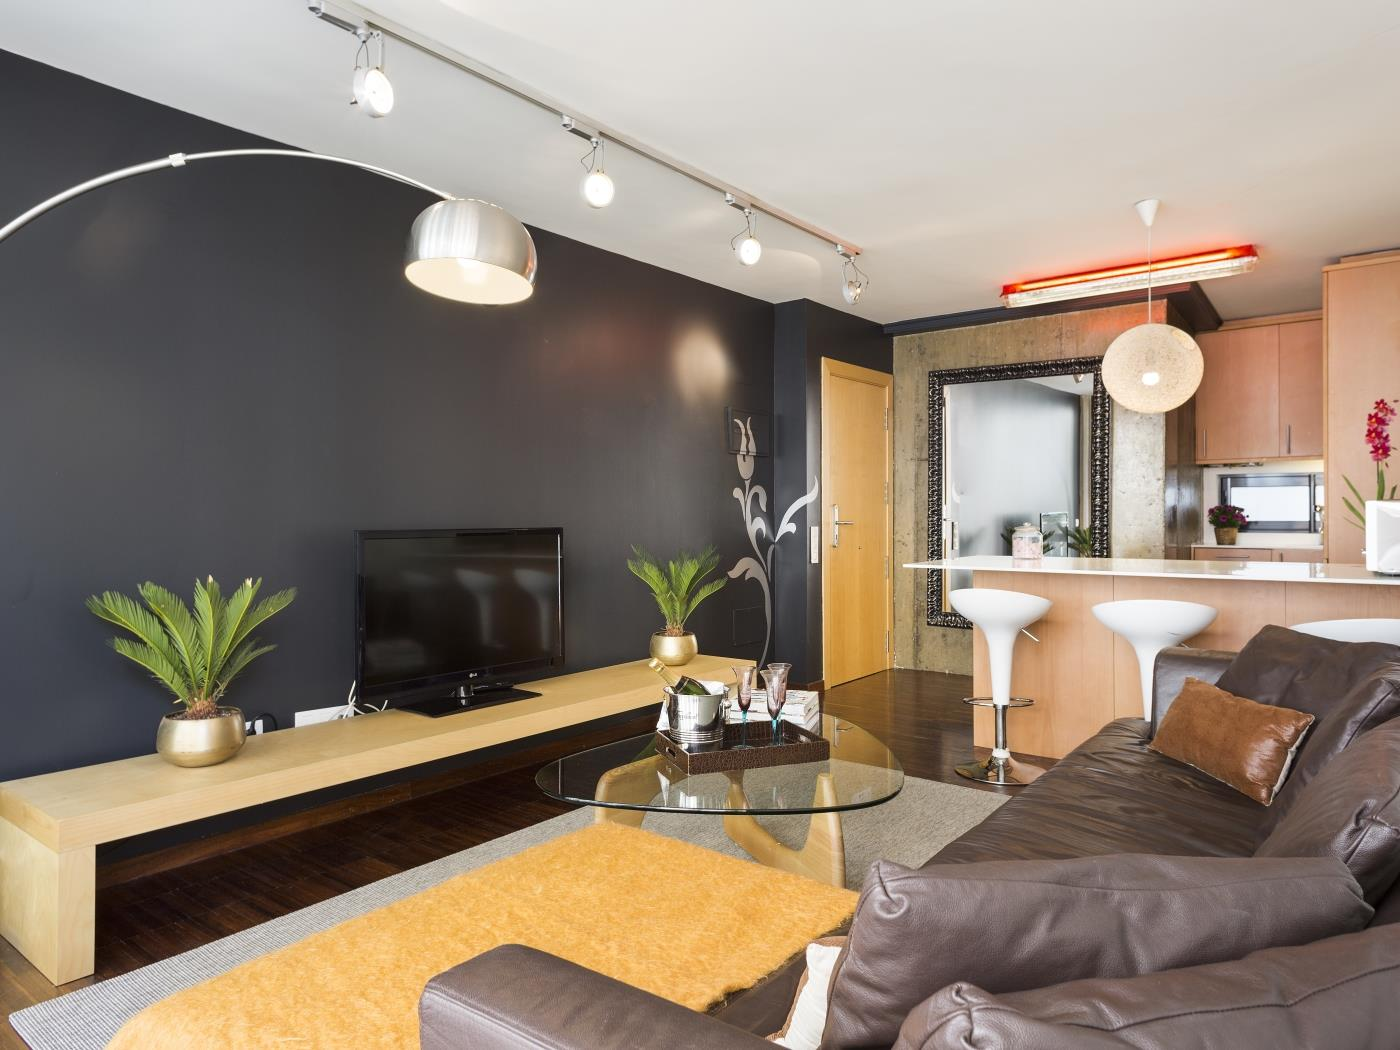 Executive Luxury Apartment near the City Center for 4 - My Space Barcelona Apartments